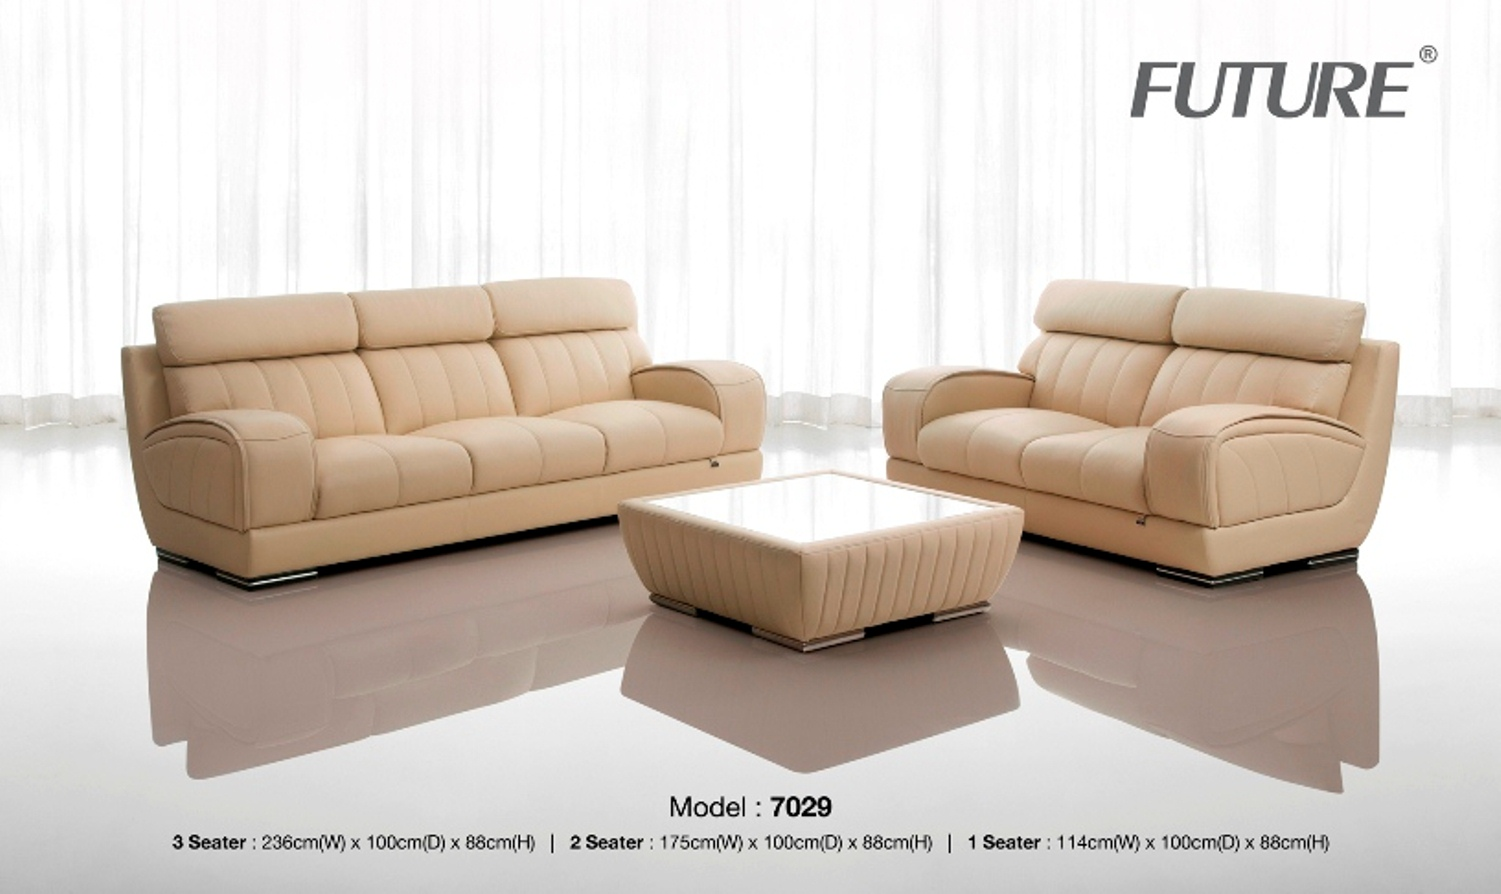 SOFA BĂNG DA BÒ - FUTURE MODEL 7029